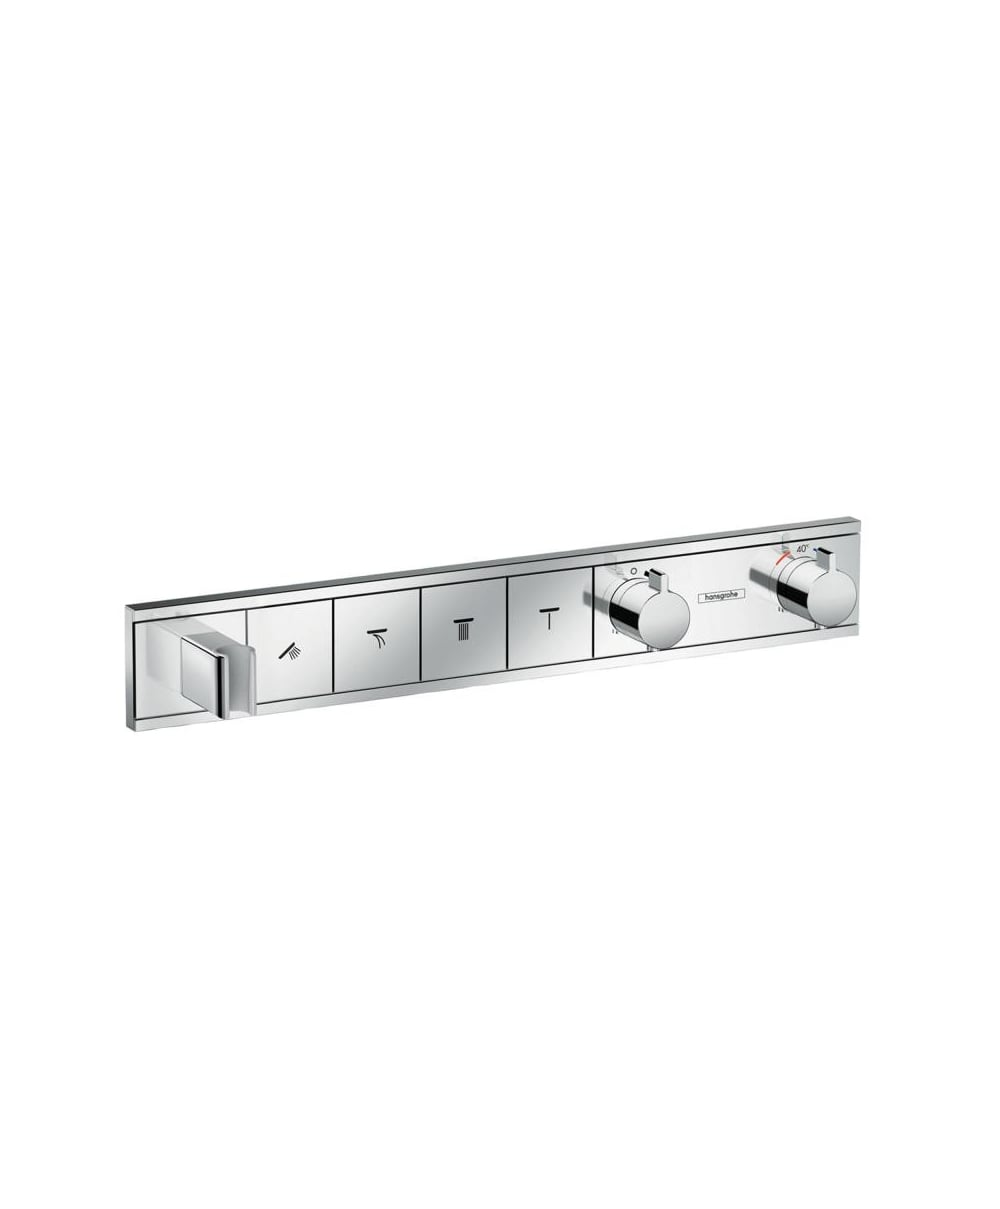 Hansgrohe RainSelect 4 Outlet Concealed Thermostatic Shower Mixer